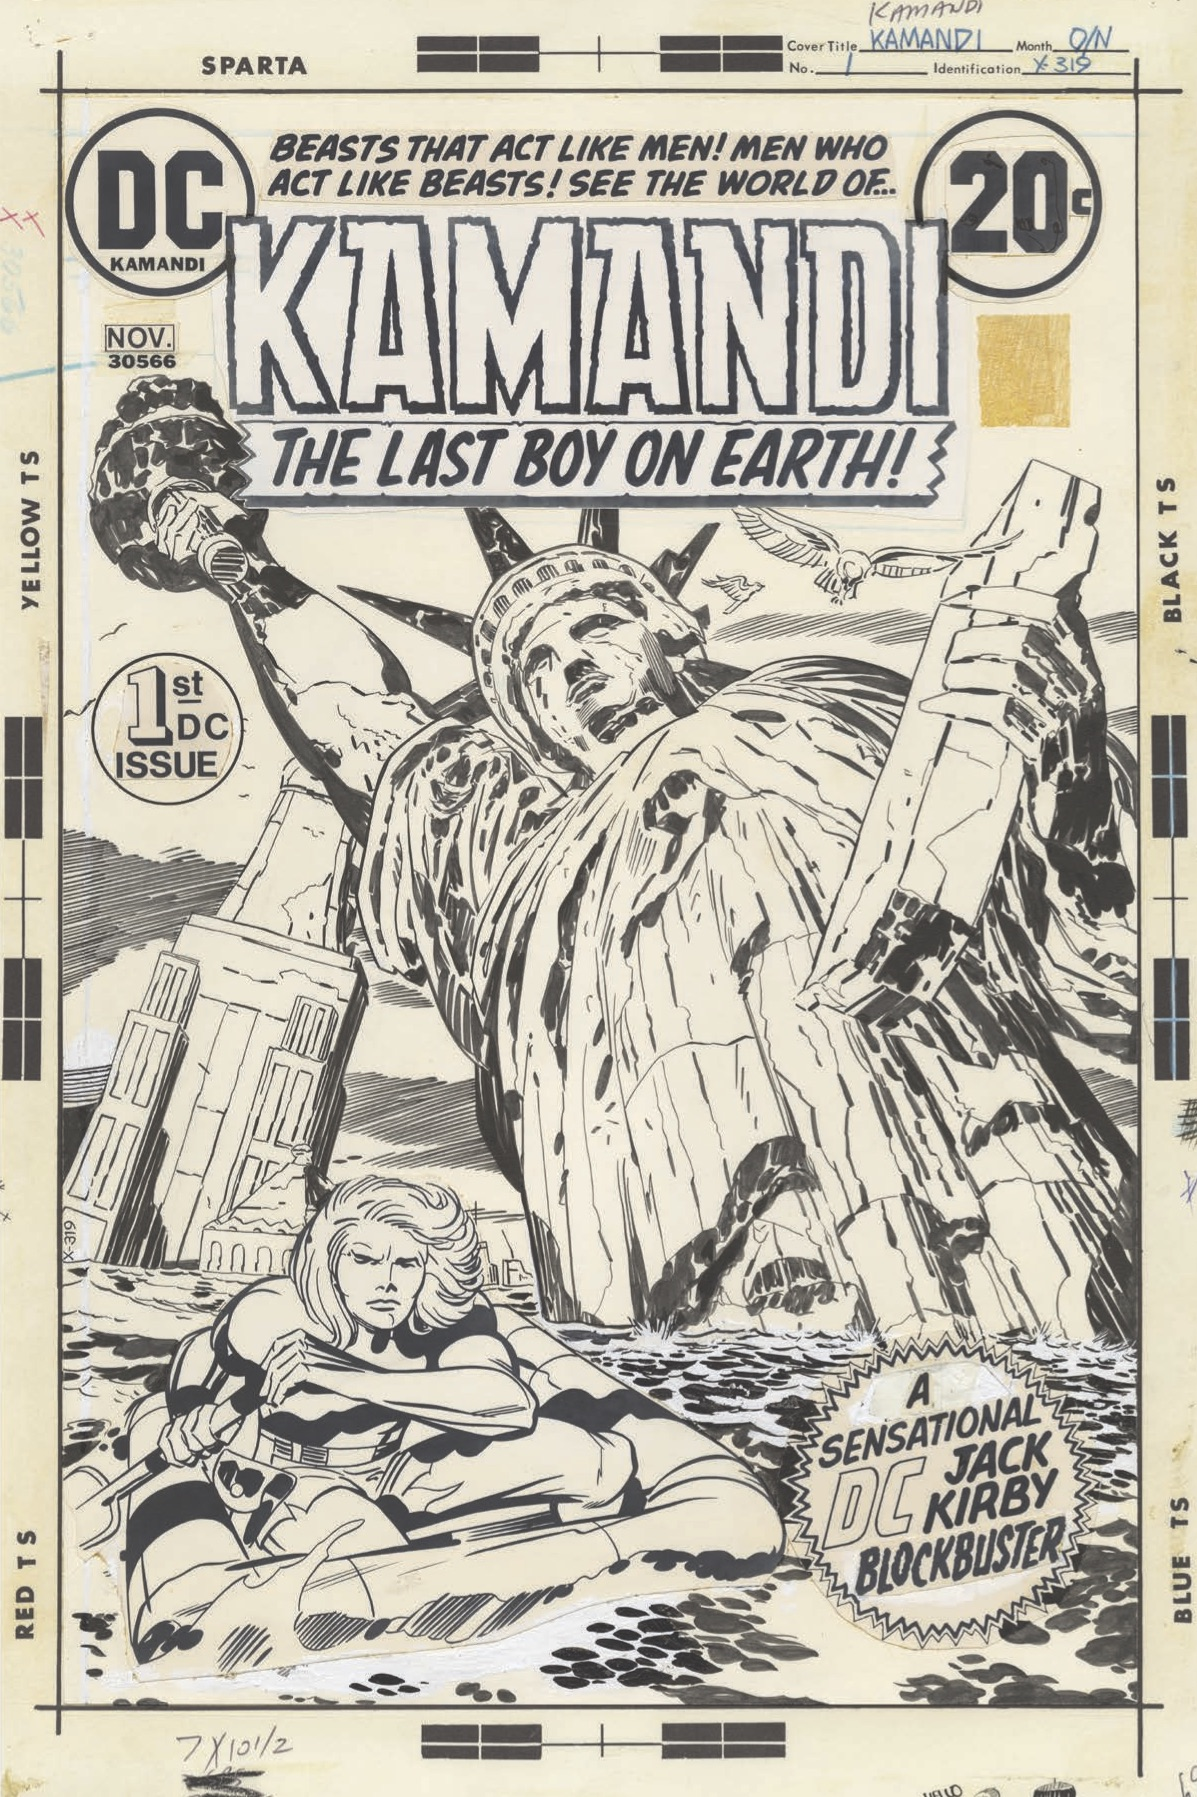 jackkirby_pencils_inks-lokamandi1ink